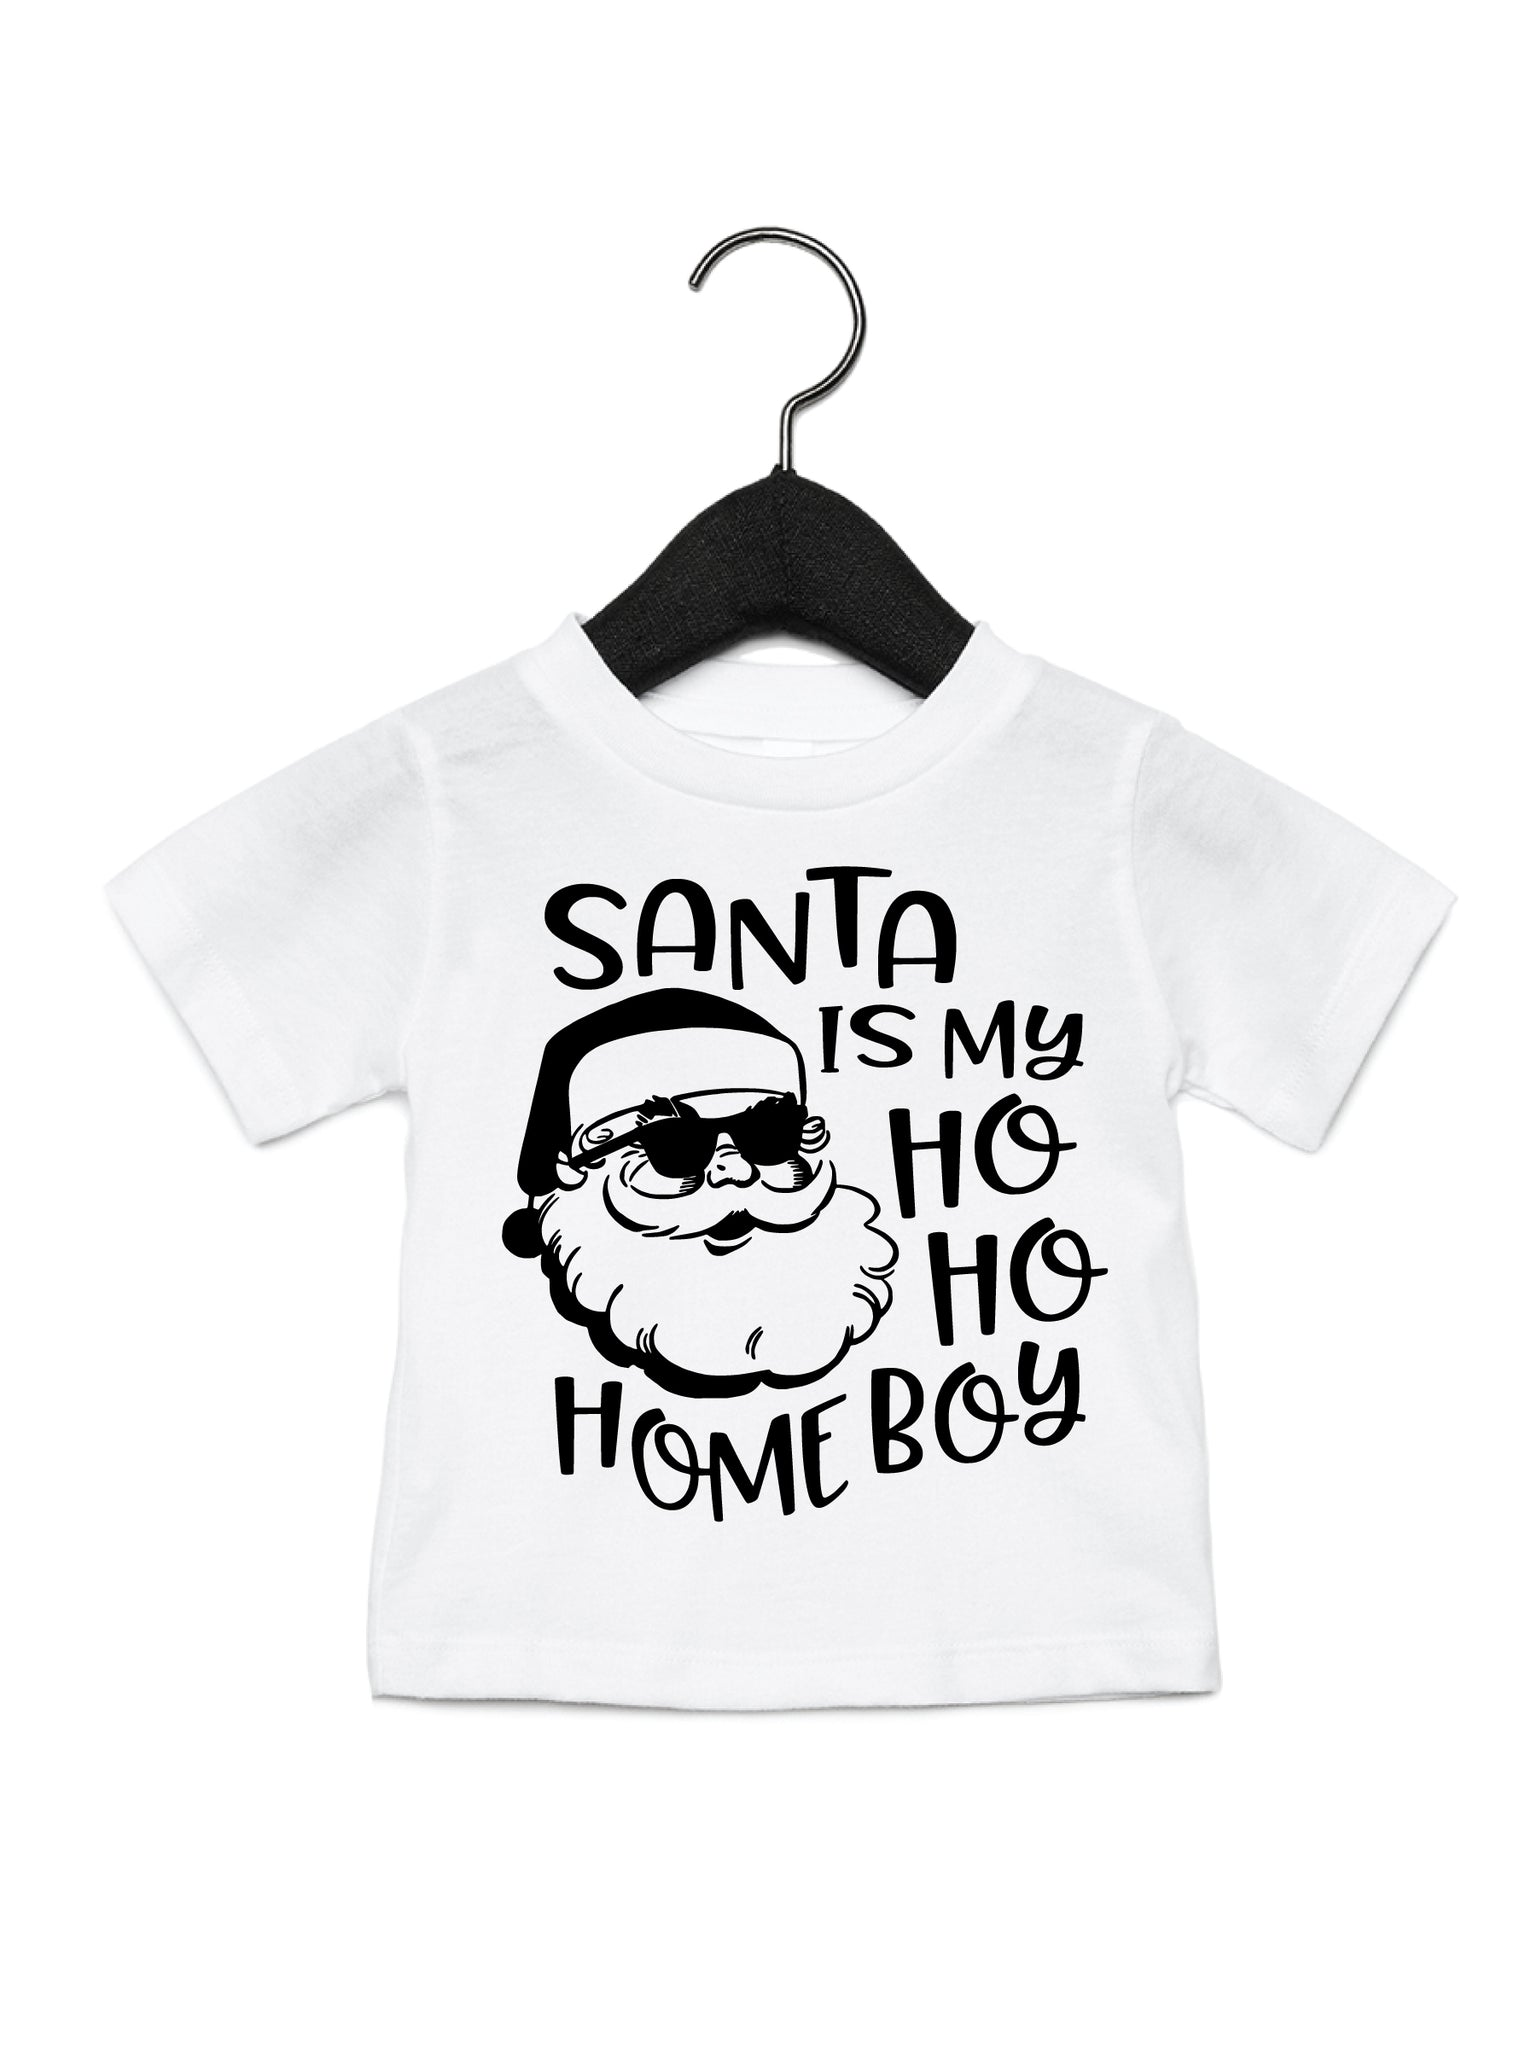 Santa is my Homeboy Tshirt